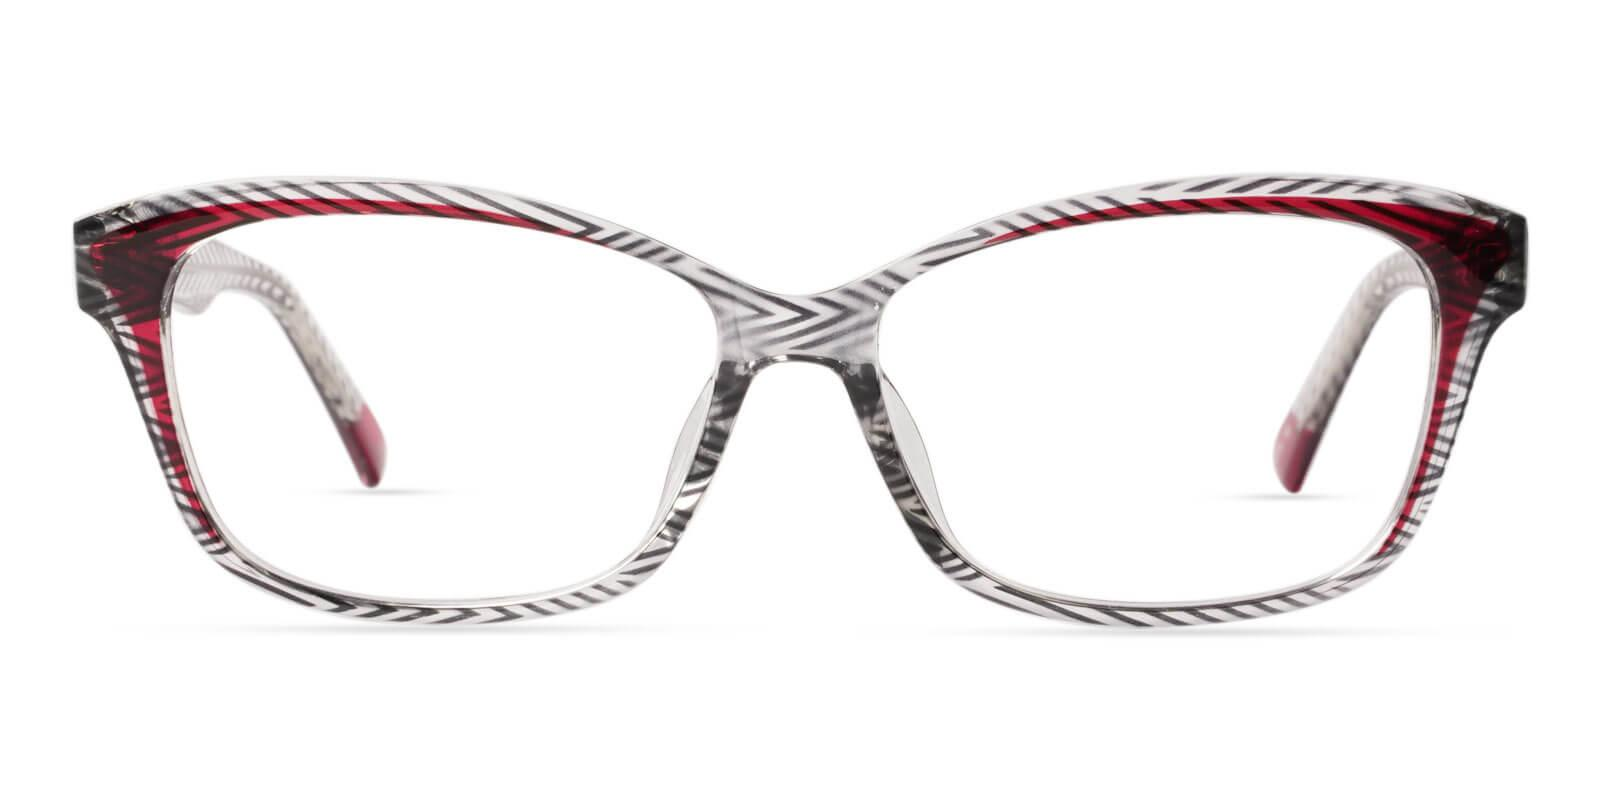 Elliot Pattern Plastic Eyeglasses , UniversalBridgeFit Frames from ABBE Glasses